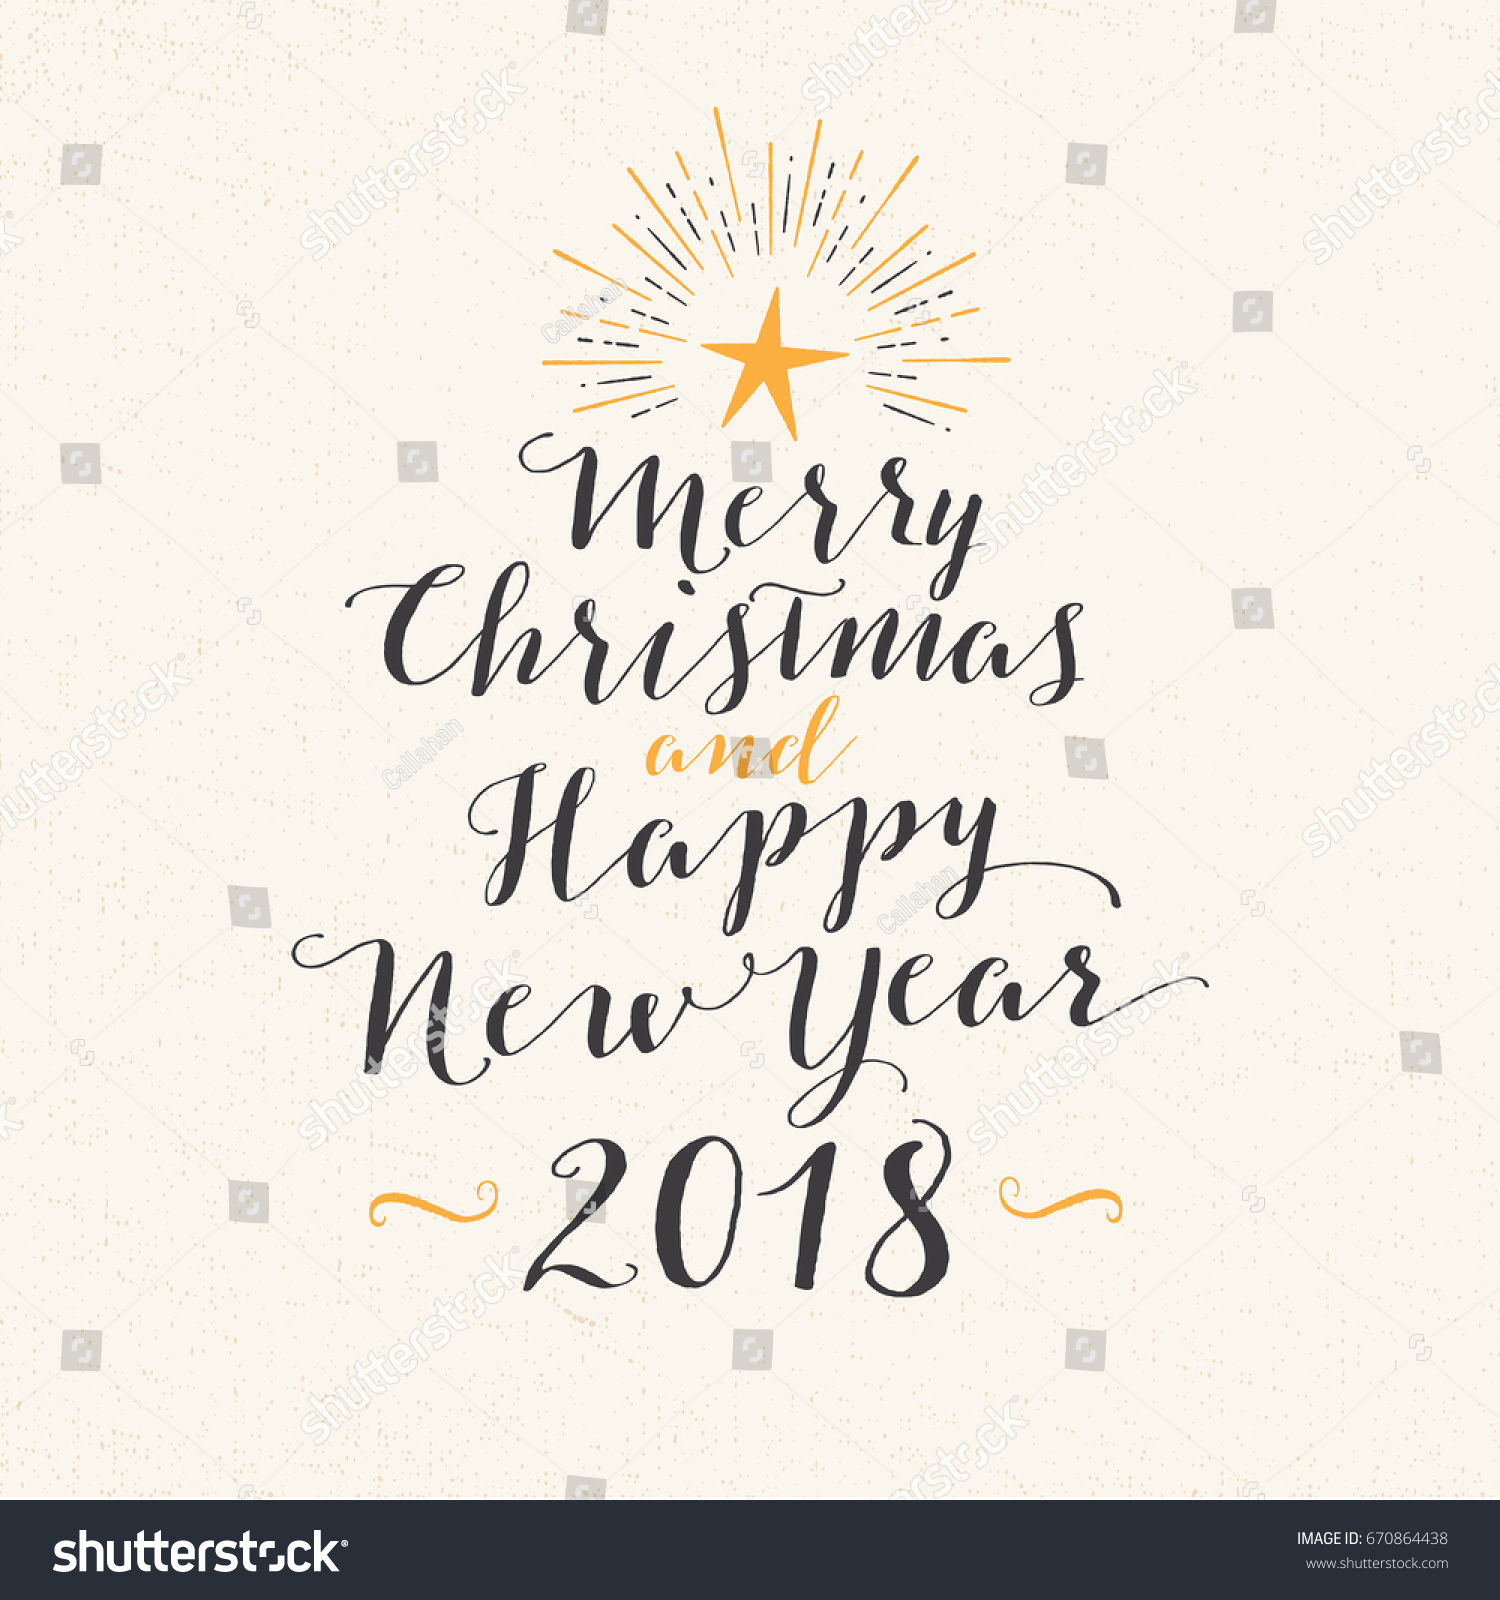 handmade style greeting card merry christmas and happy new year 2018 vector eps10